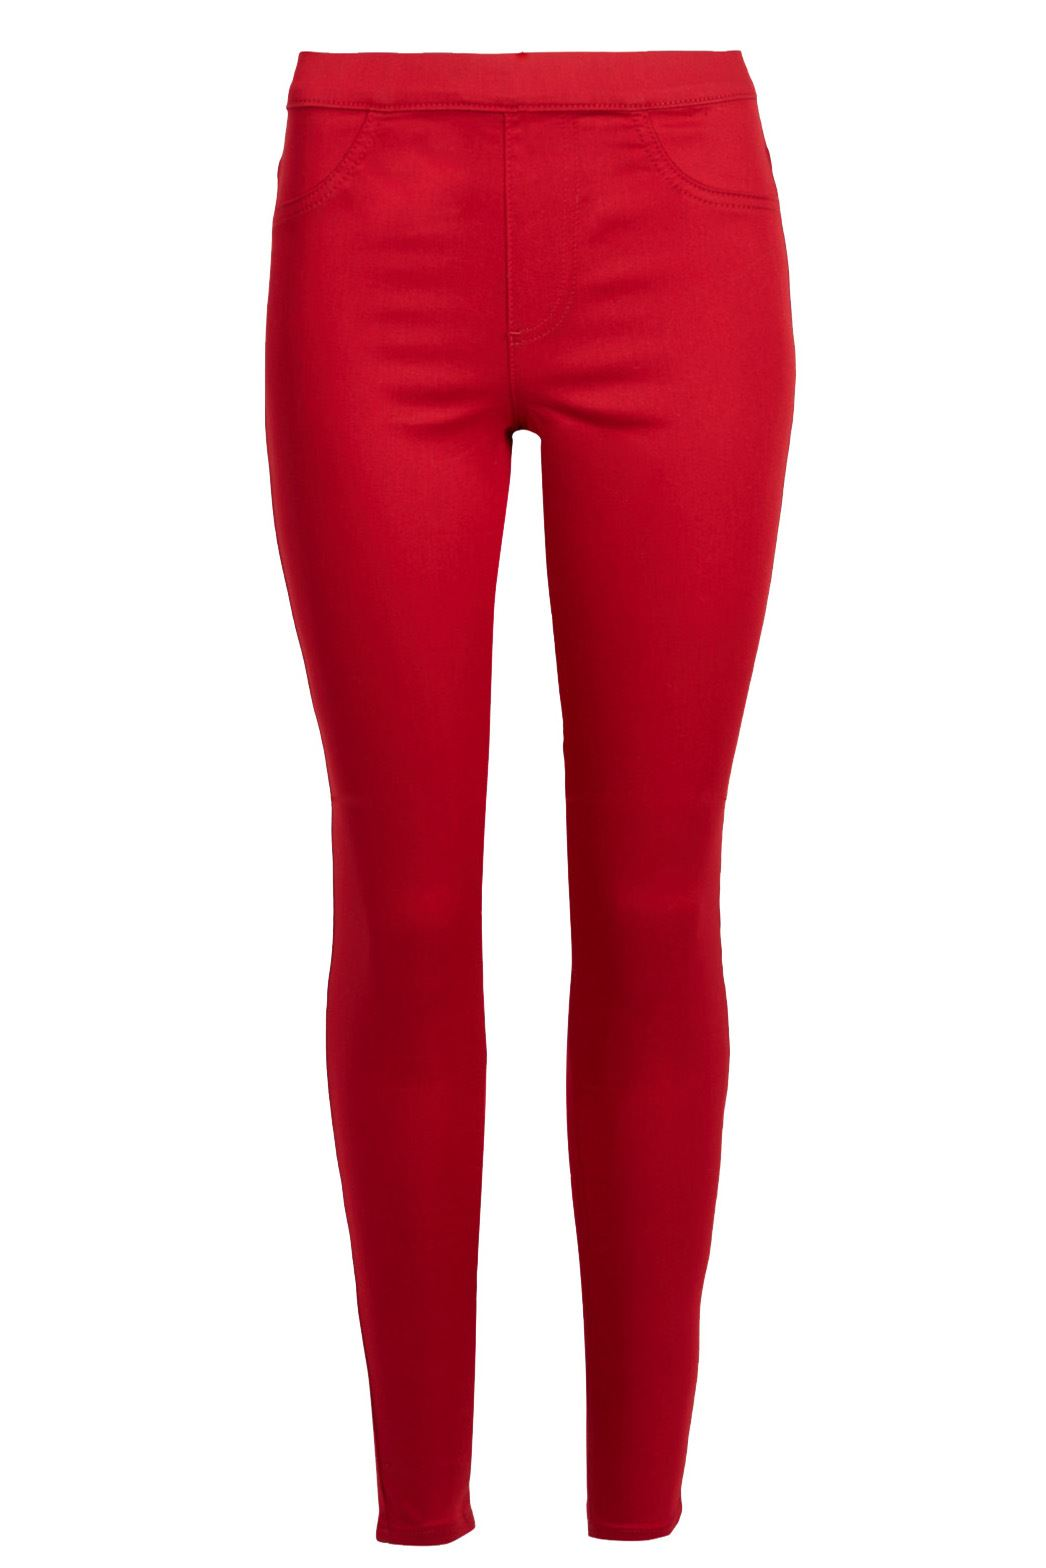 NEW-Ex-M-amp-S-Womens-Stretch-Fit-High-Waist-Skinny-Jeggings-Size-8-10-12-14-16-18 thumbnail 14